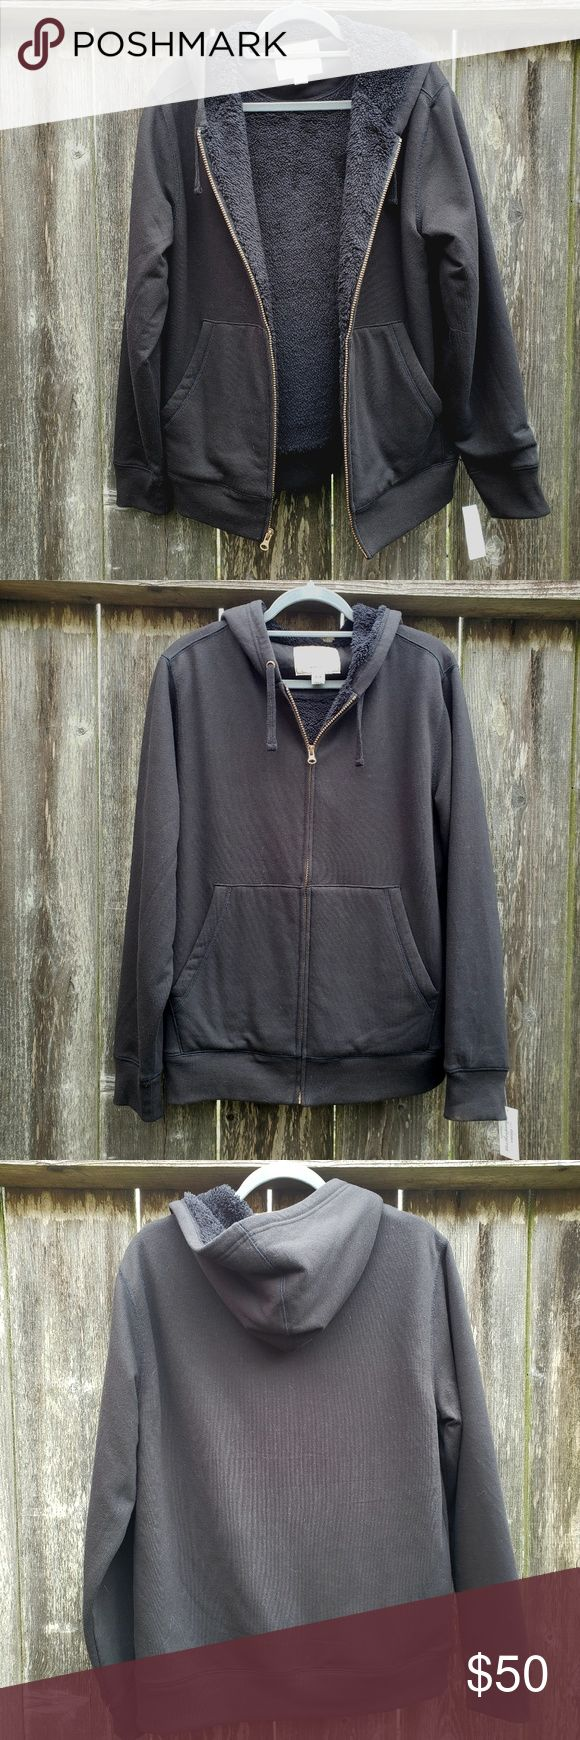 Sherpa Lined Weatherproof Vintage Hoodie MEN'S MEDIUM. Runs small so best fit for women medium and large. Looser but would work on women's sma…